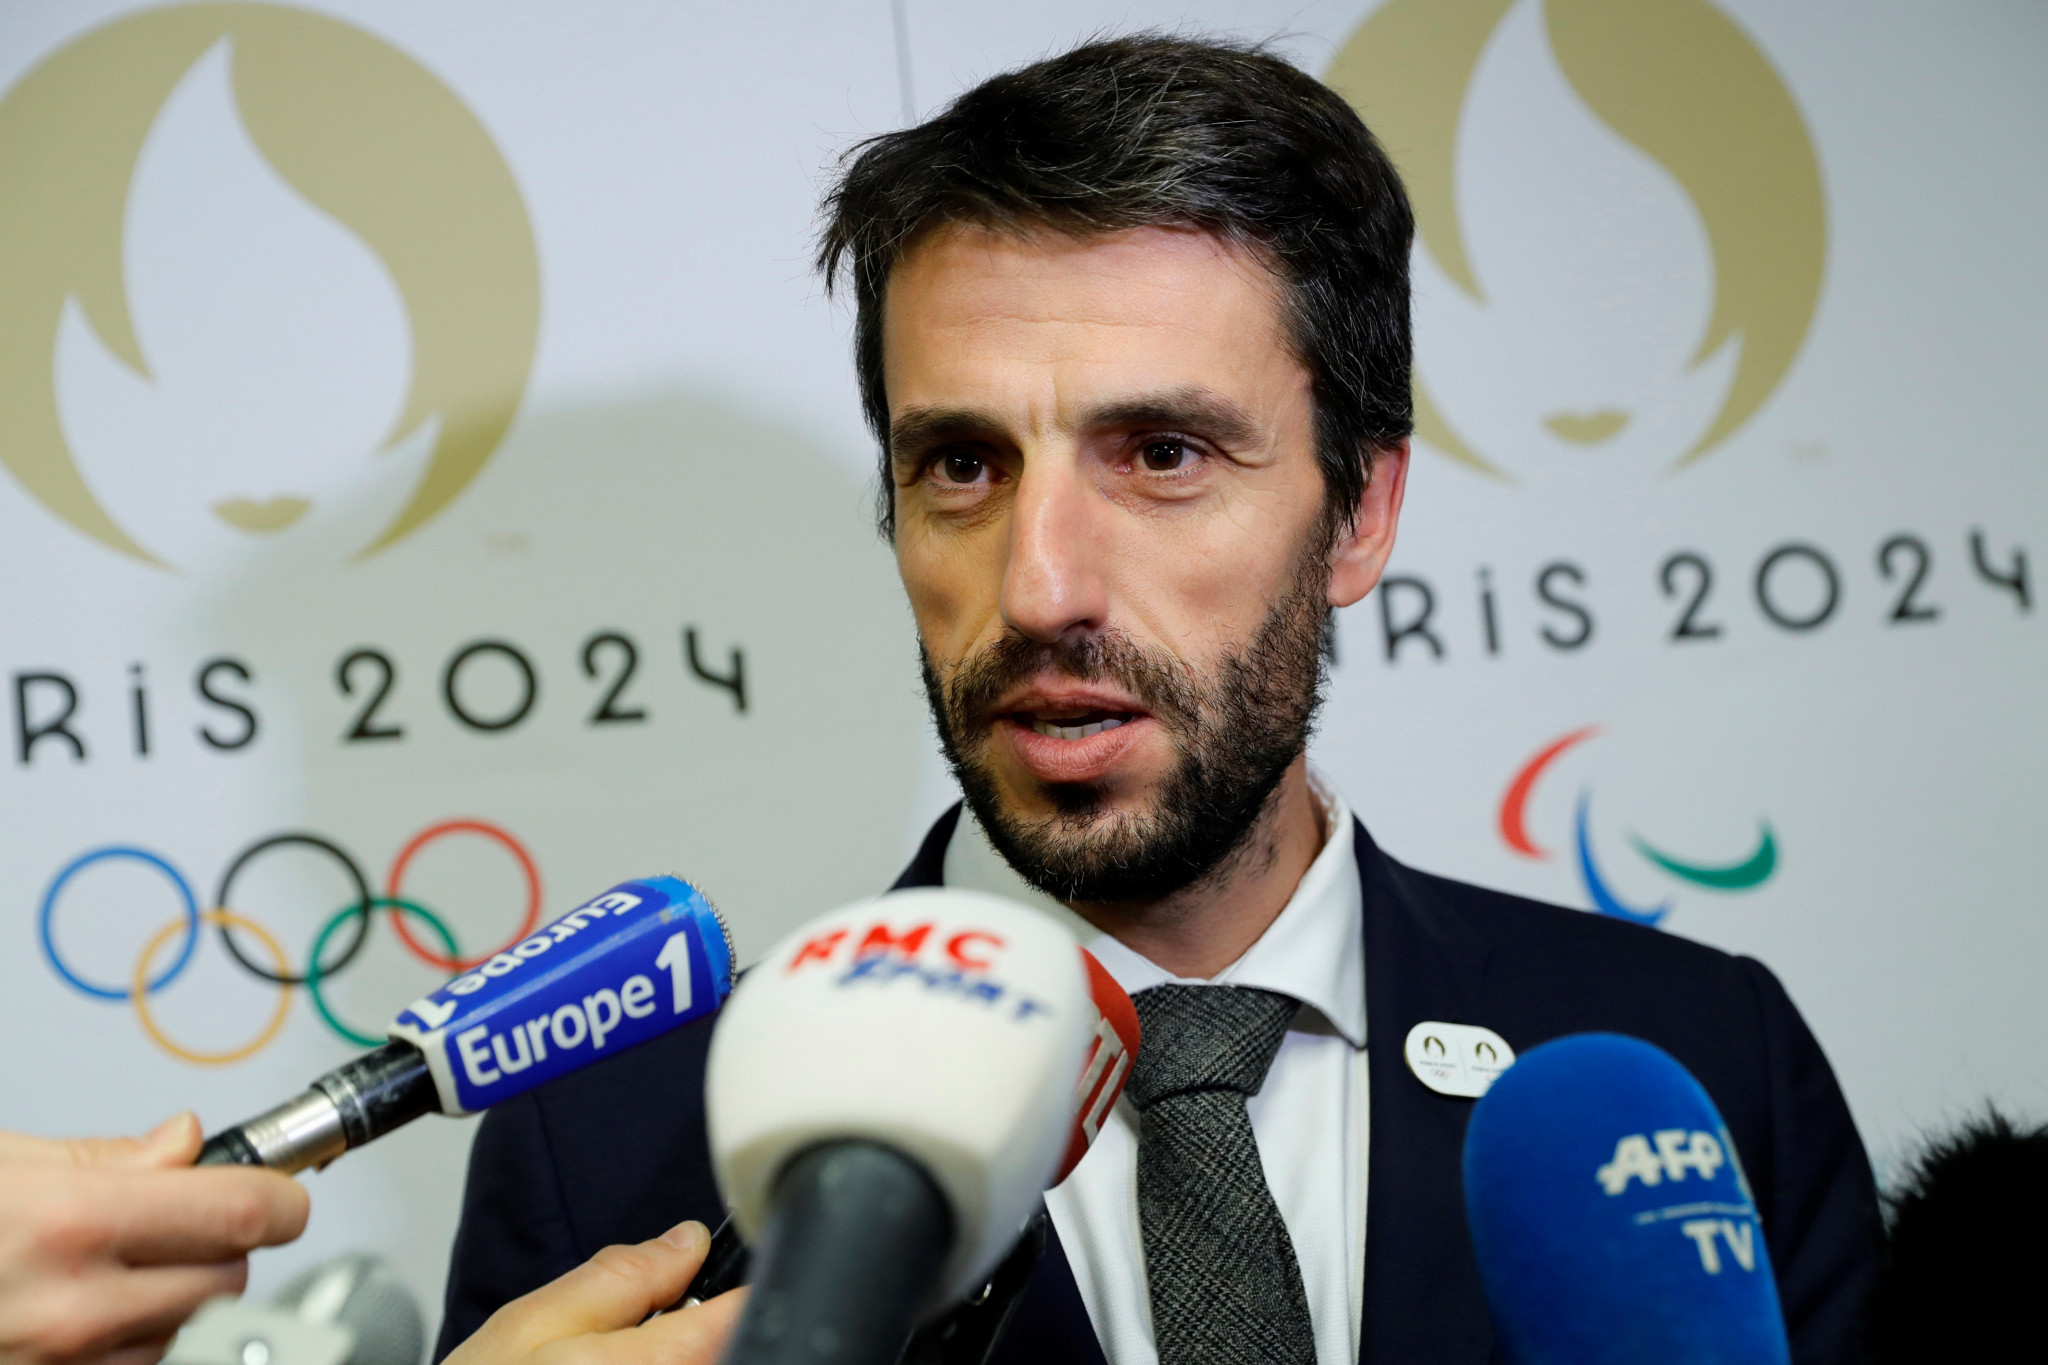 High-profile speakers announced for first Global Sports Week Paris